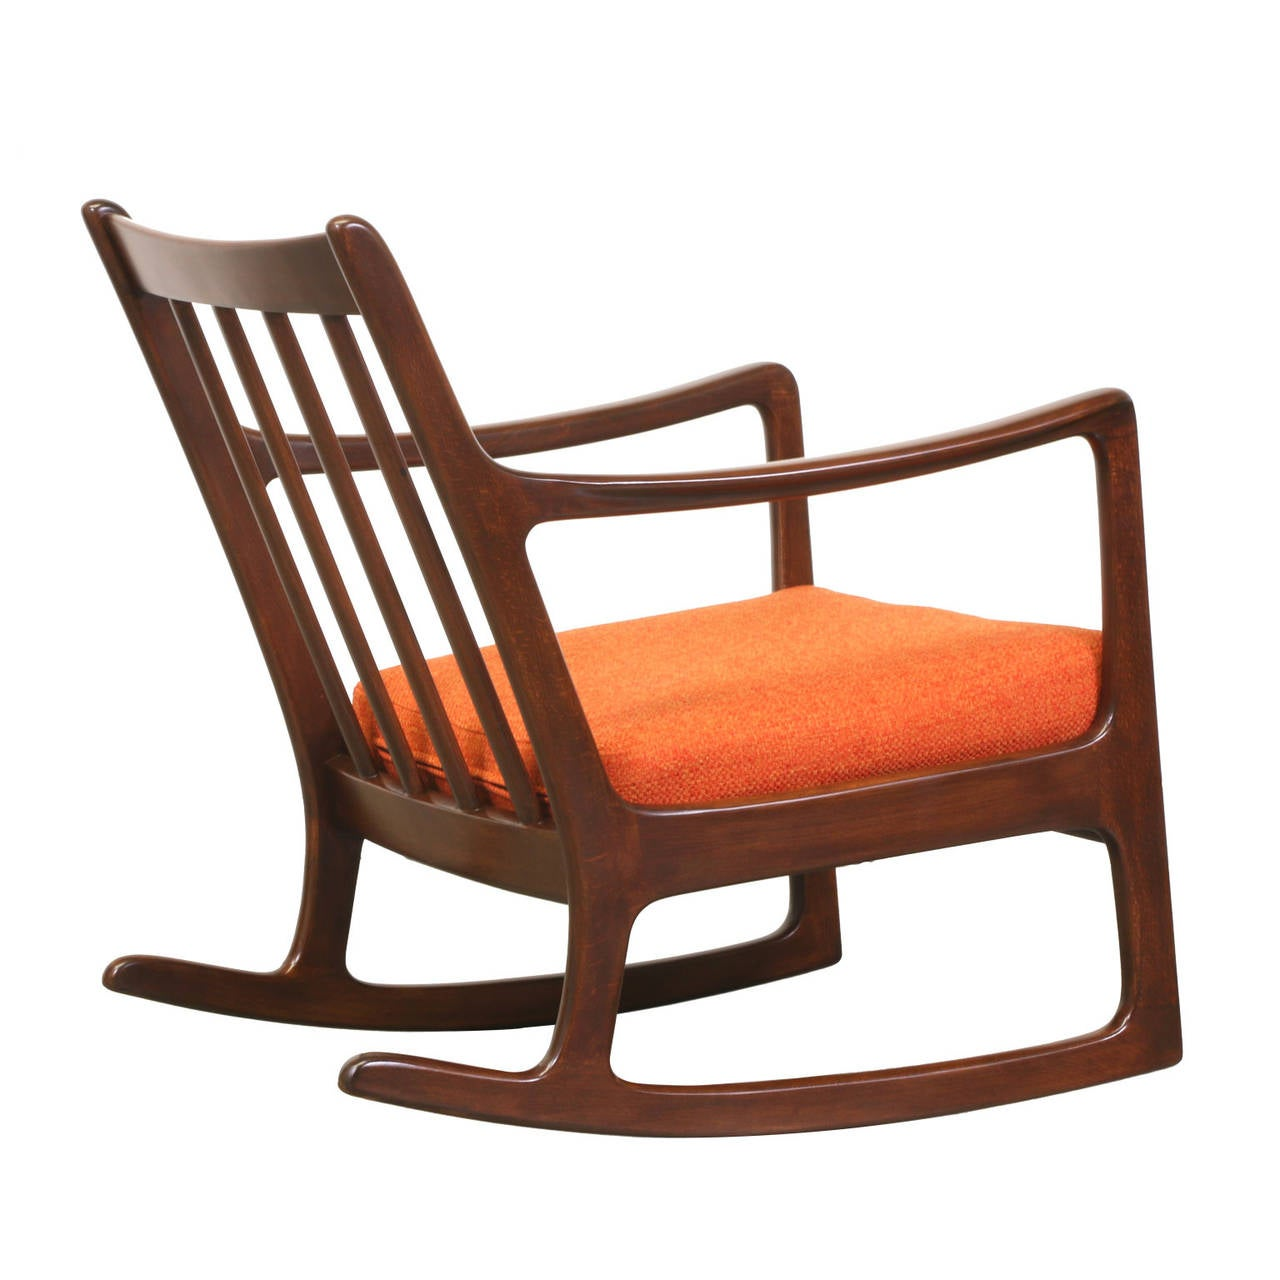 ole wanscher rocking chair for france and son for sale at 1stdibs. Black Bedroom Furniture Sets. Home Design Ideas